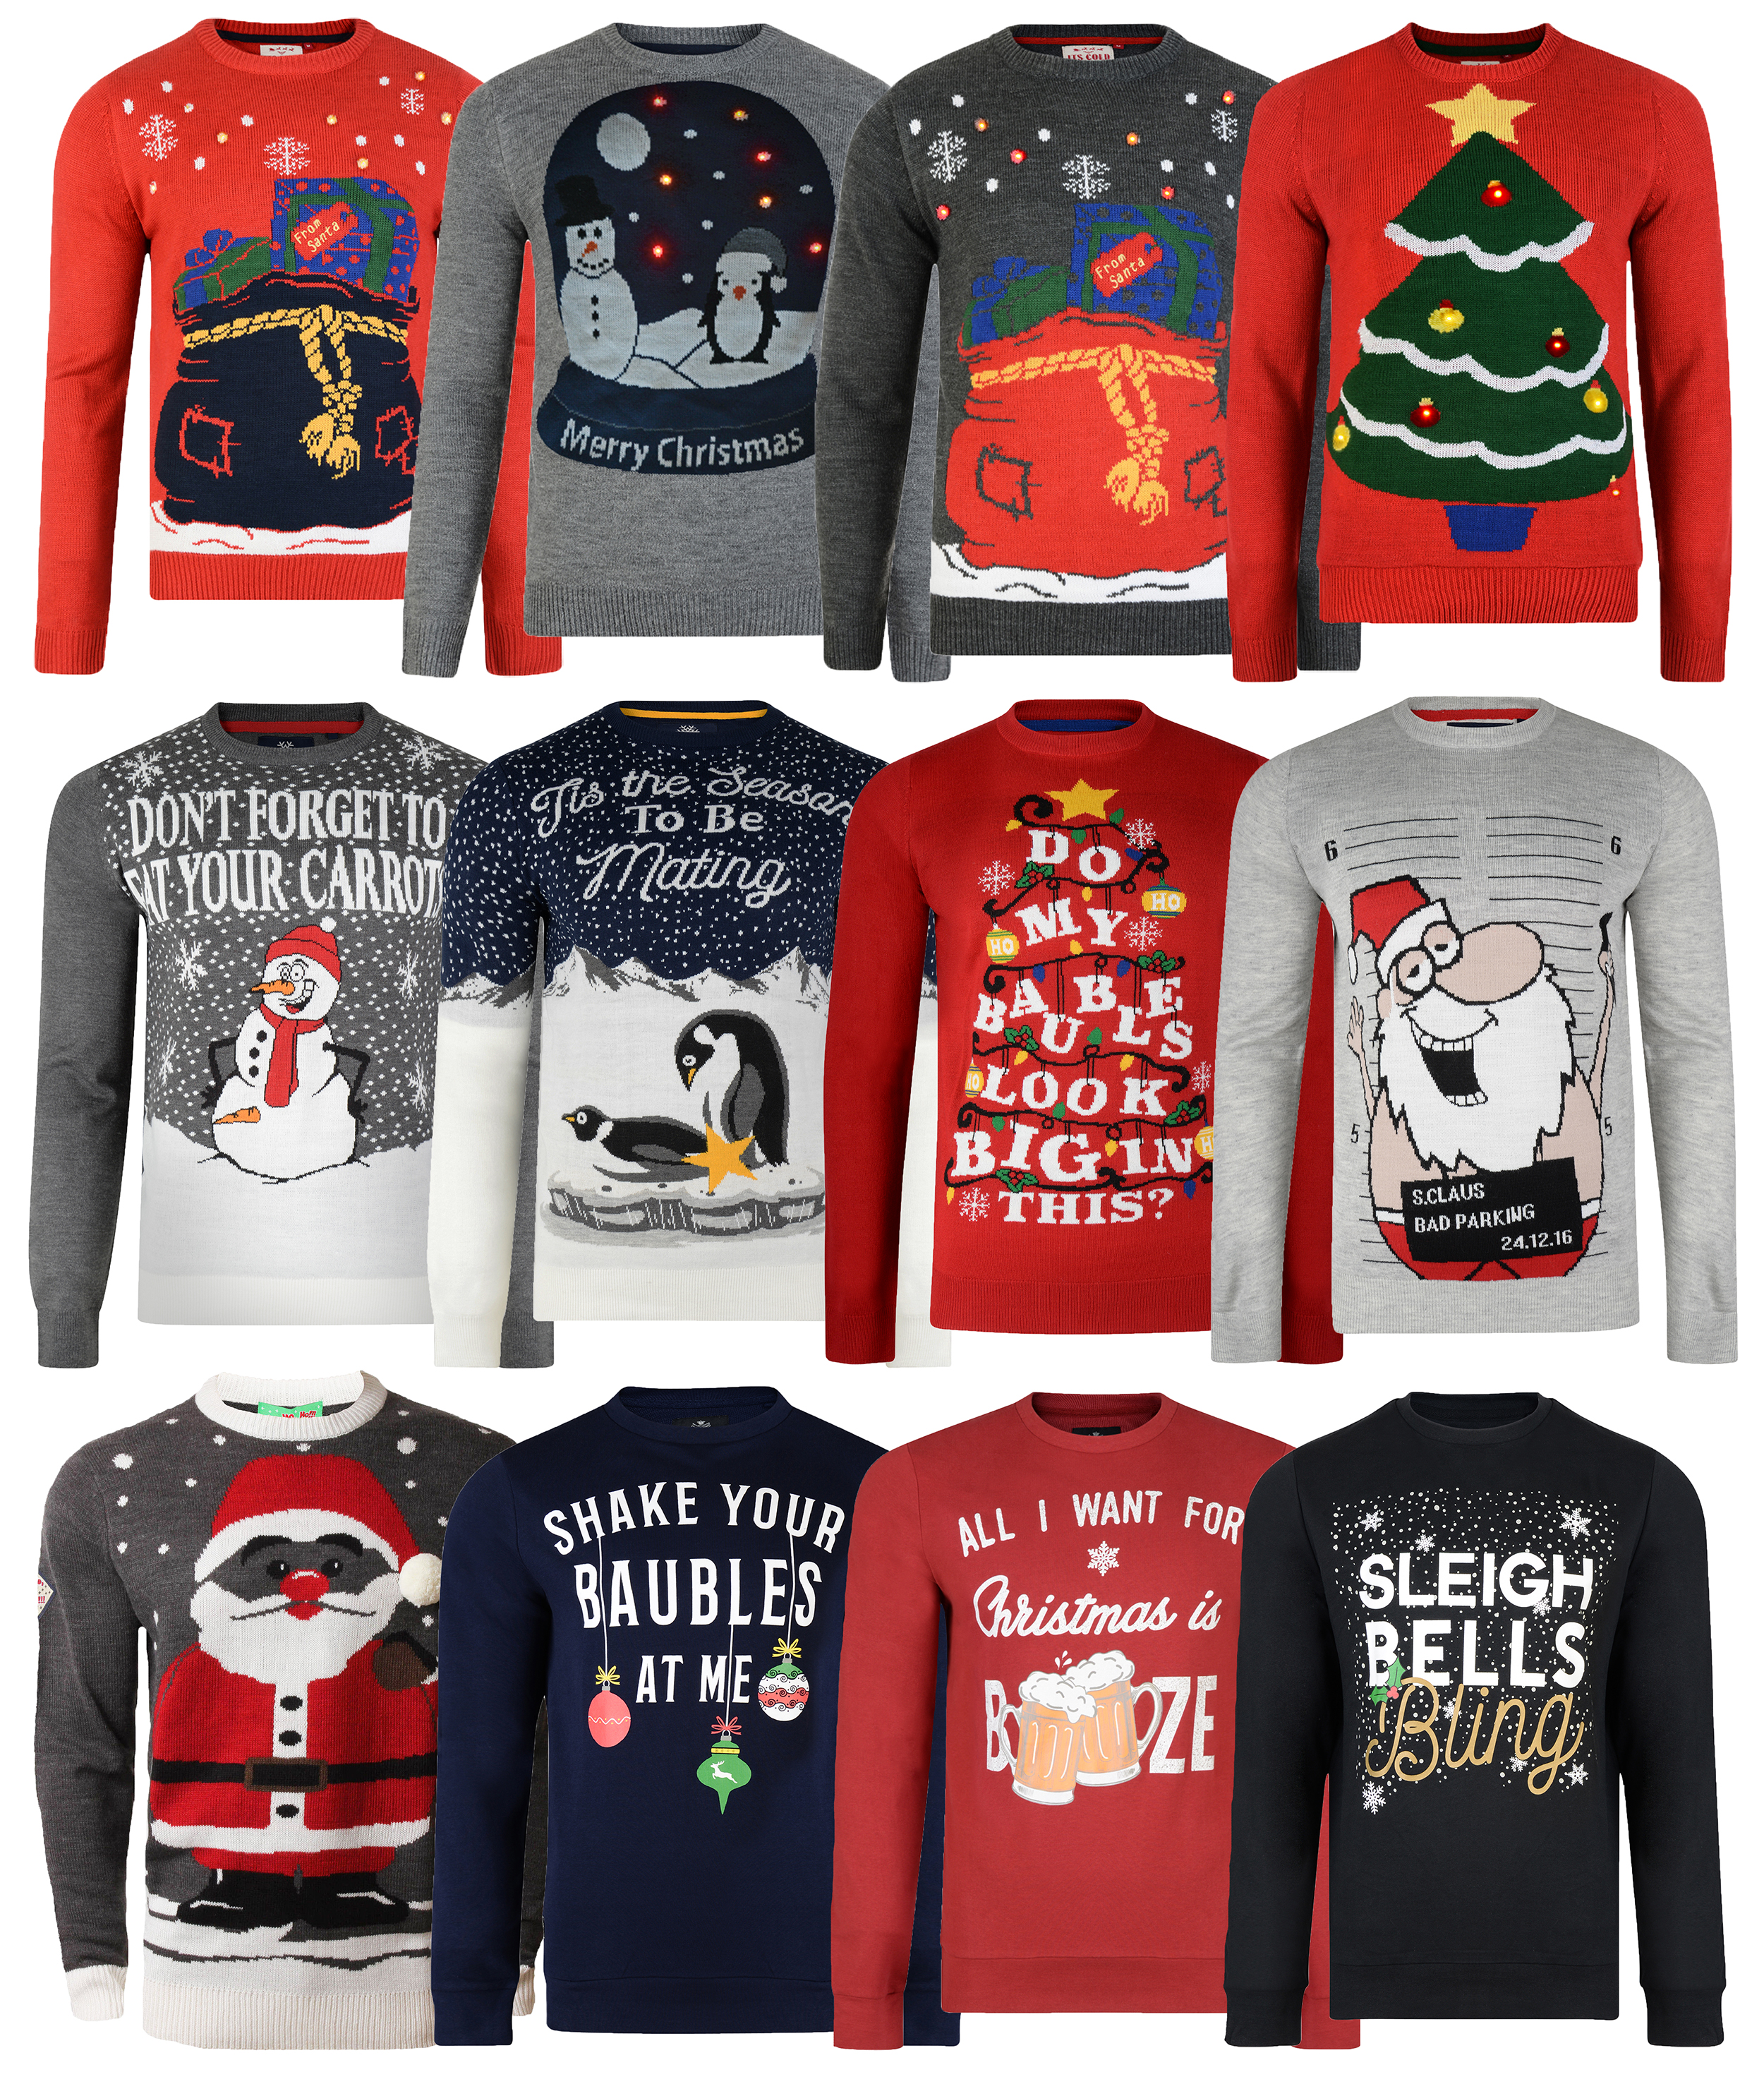 Christmas Jumpers.Details About Christmas Jumpers New Novelty Festive Knit Sweatshirt Designs Xmas Jumper